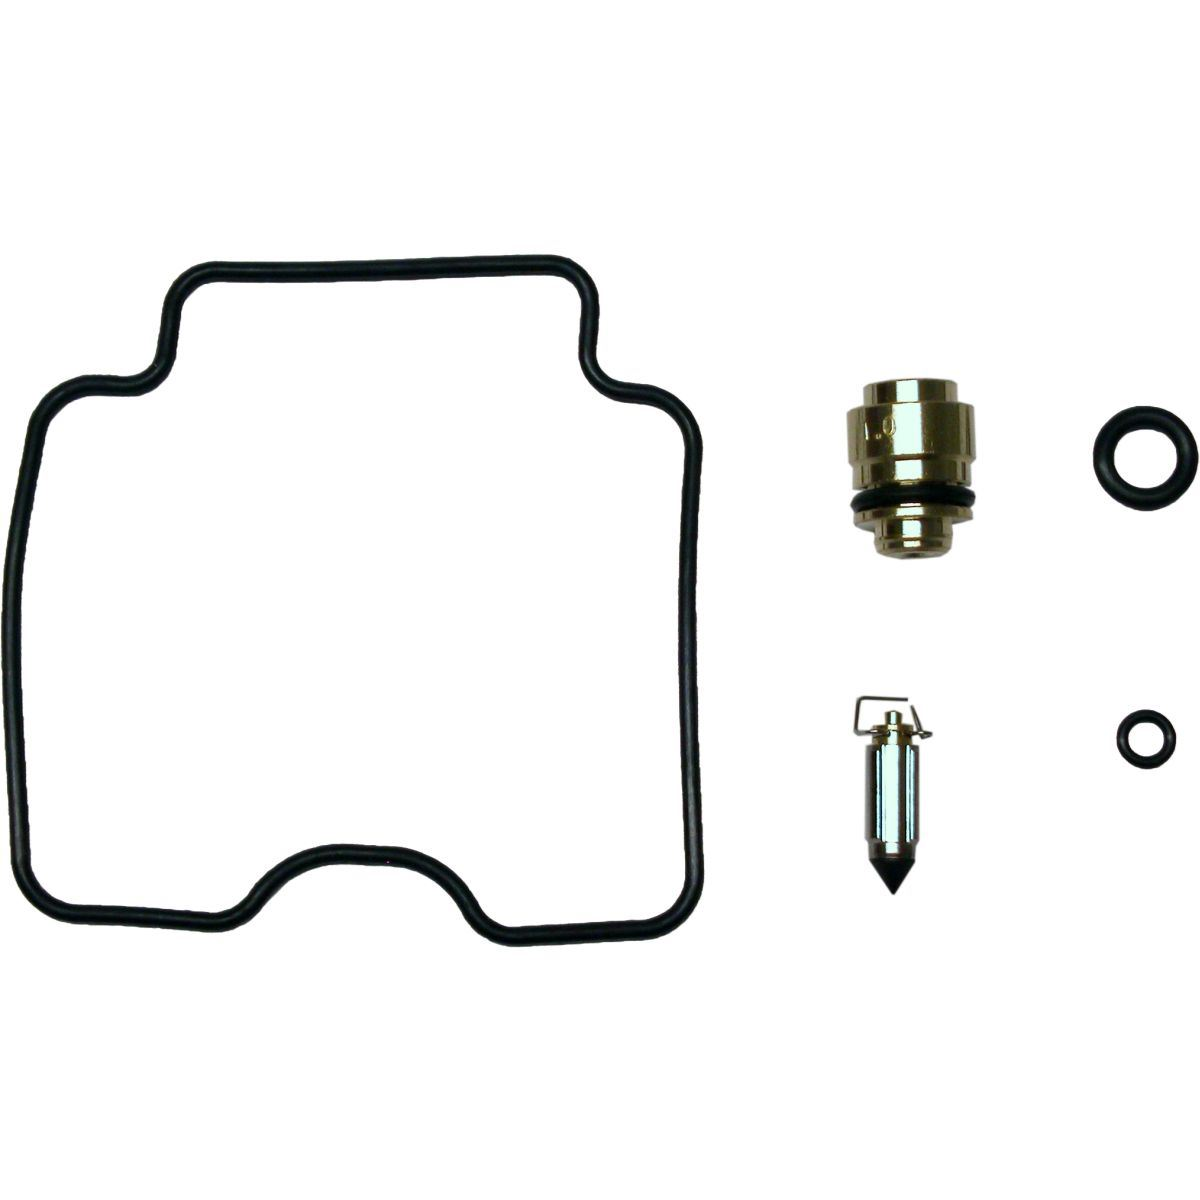 Aw Motorcycle Parts Carburettor Repair Kit Yamaha Fzs600